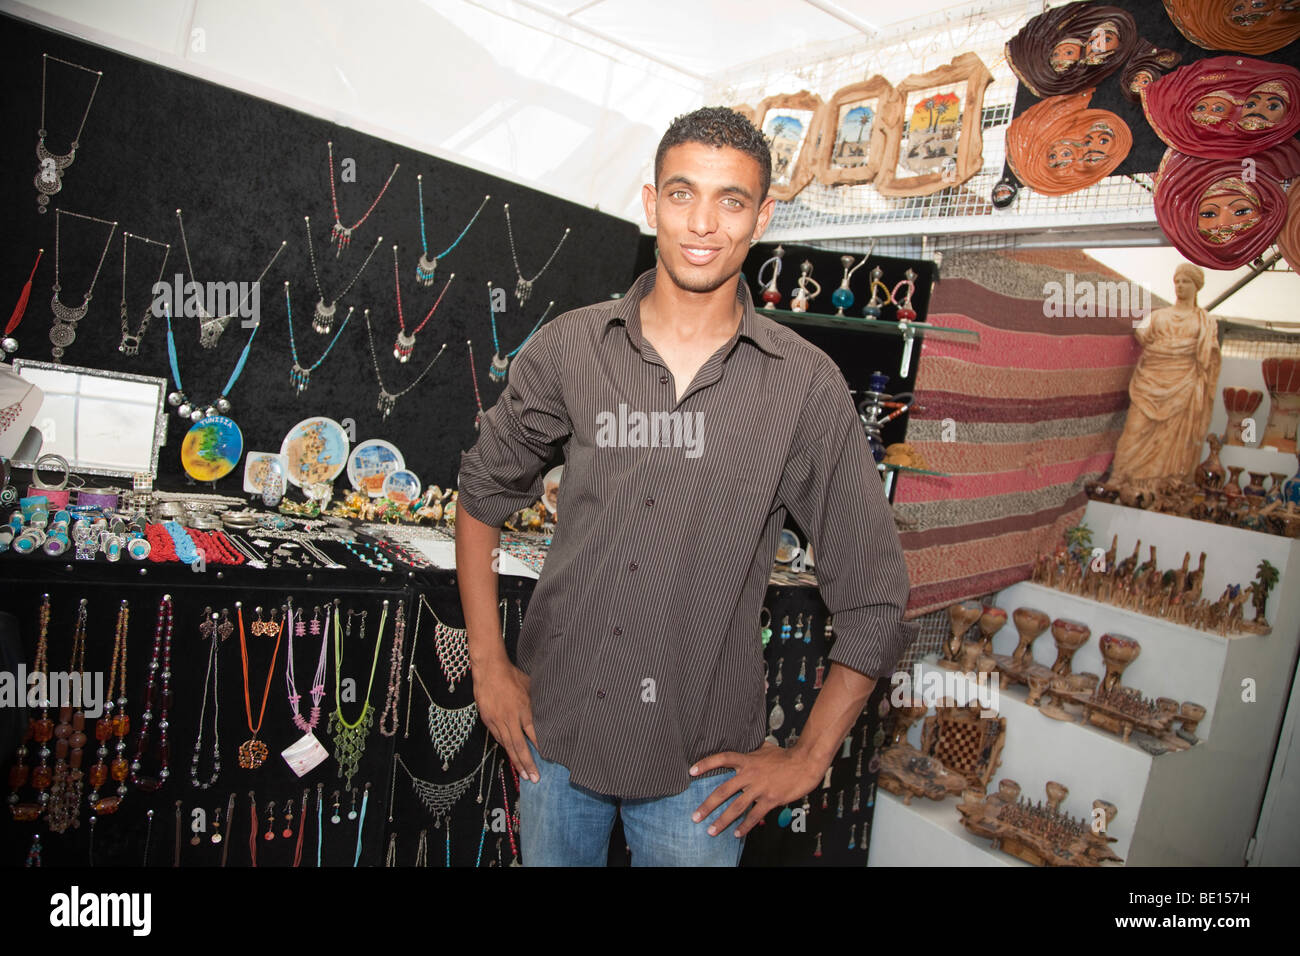 A shop in Carthage, Tunisia sells local handicrafts to tourists. - Stock Image